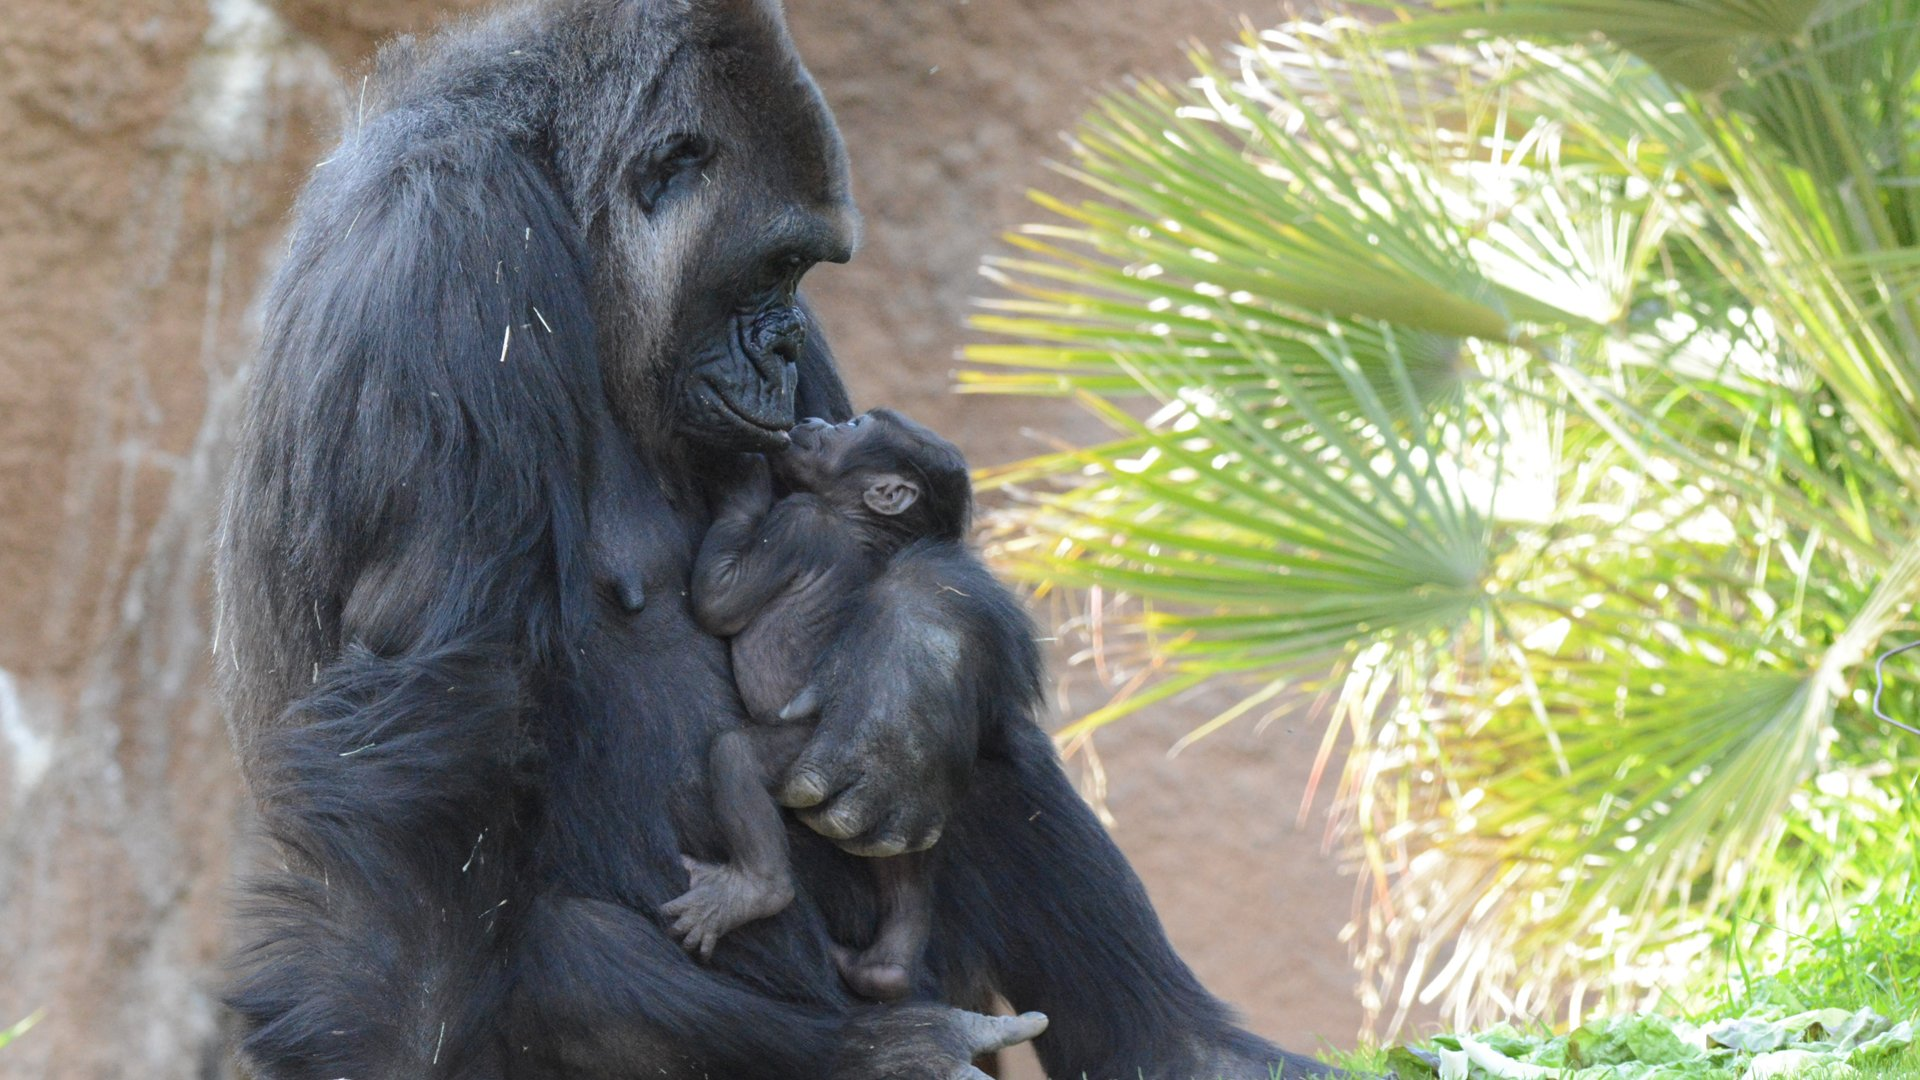 N'djia and Angela are seen in a photo released by the L.A. Zoo on Feb. 18, 2020.